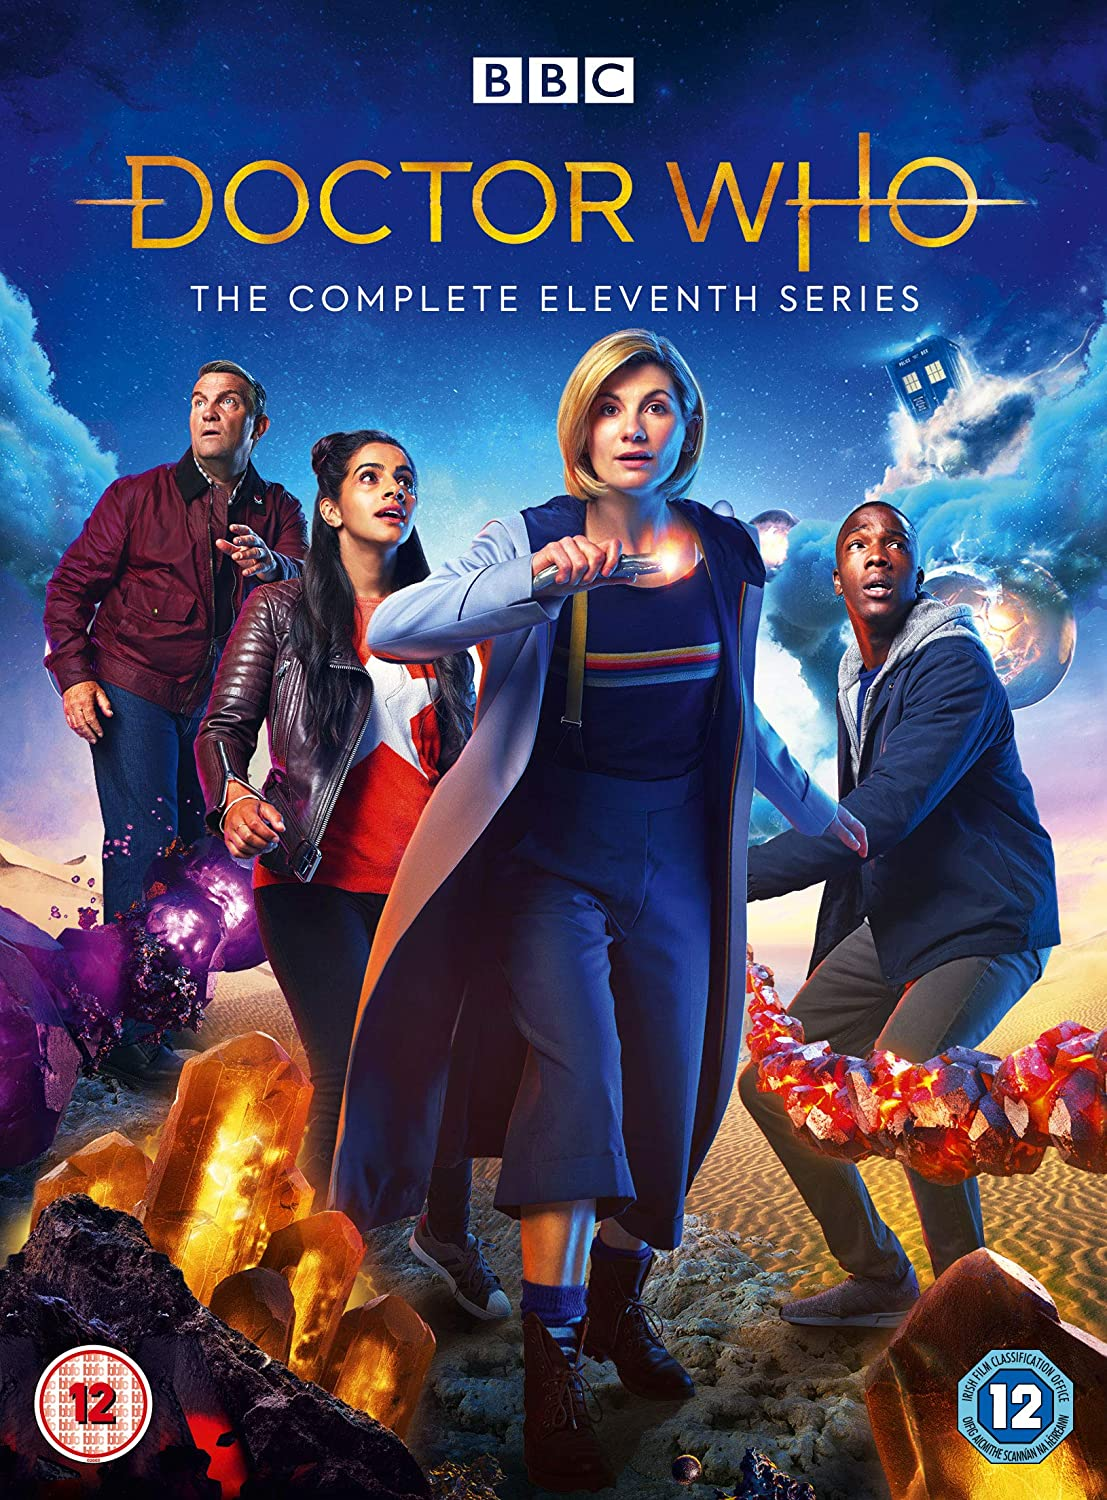 Dr. Who - Whittaker DVD